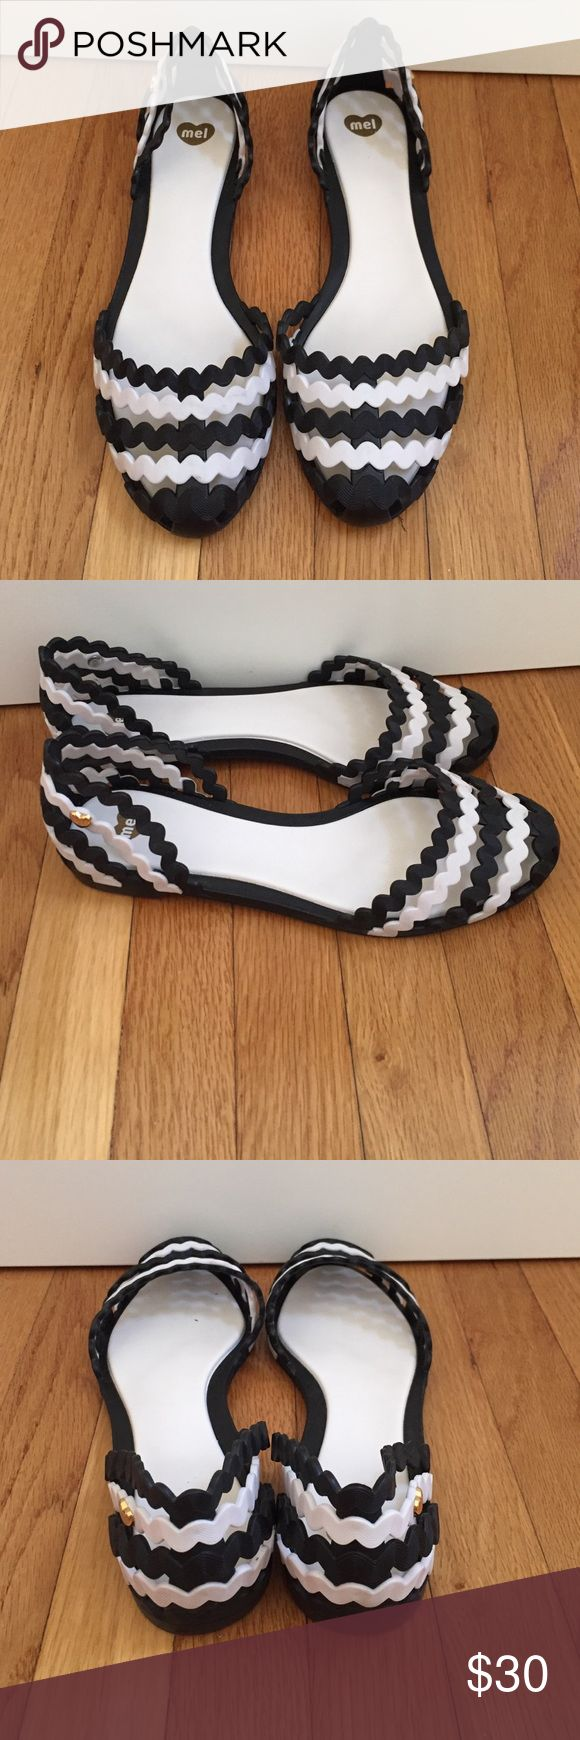 Mel by Mellisa flats These are cute, comfy flats that let your feet breathe for the summer time! They are stripped black and white. You can wear them to work, or for just a casual stroll. Will be shipped with the original box as they were never worn. Shoes Flats & Loafers